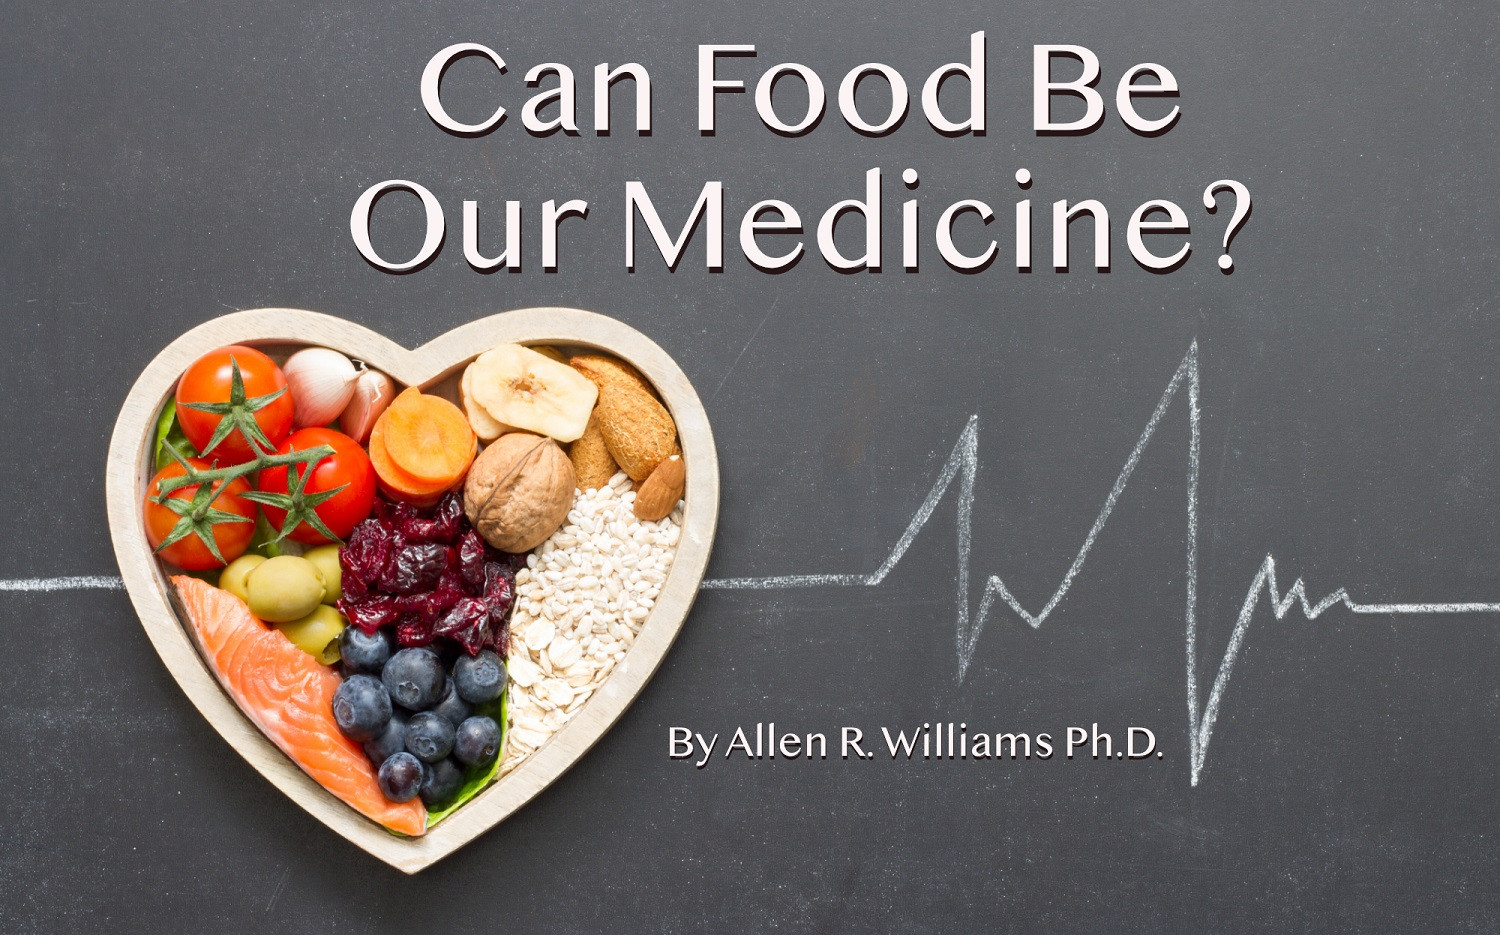 Can Food Be Our Medicine